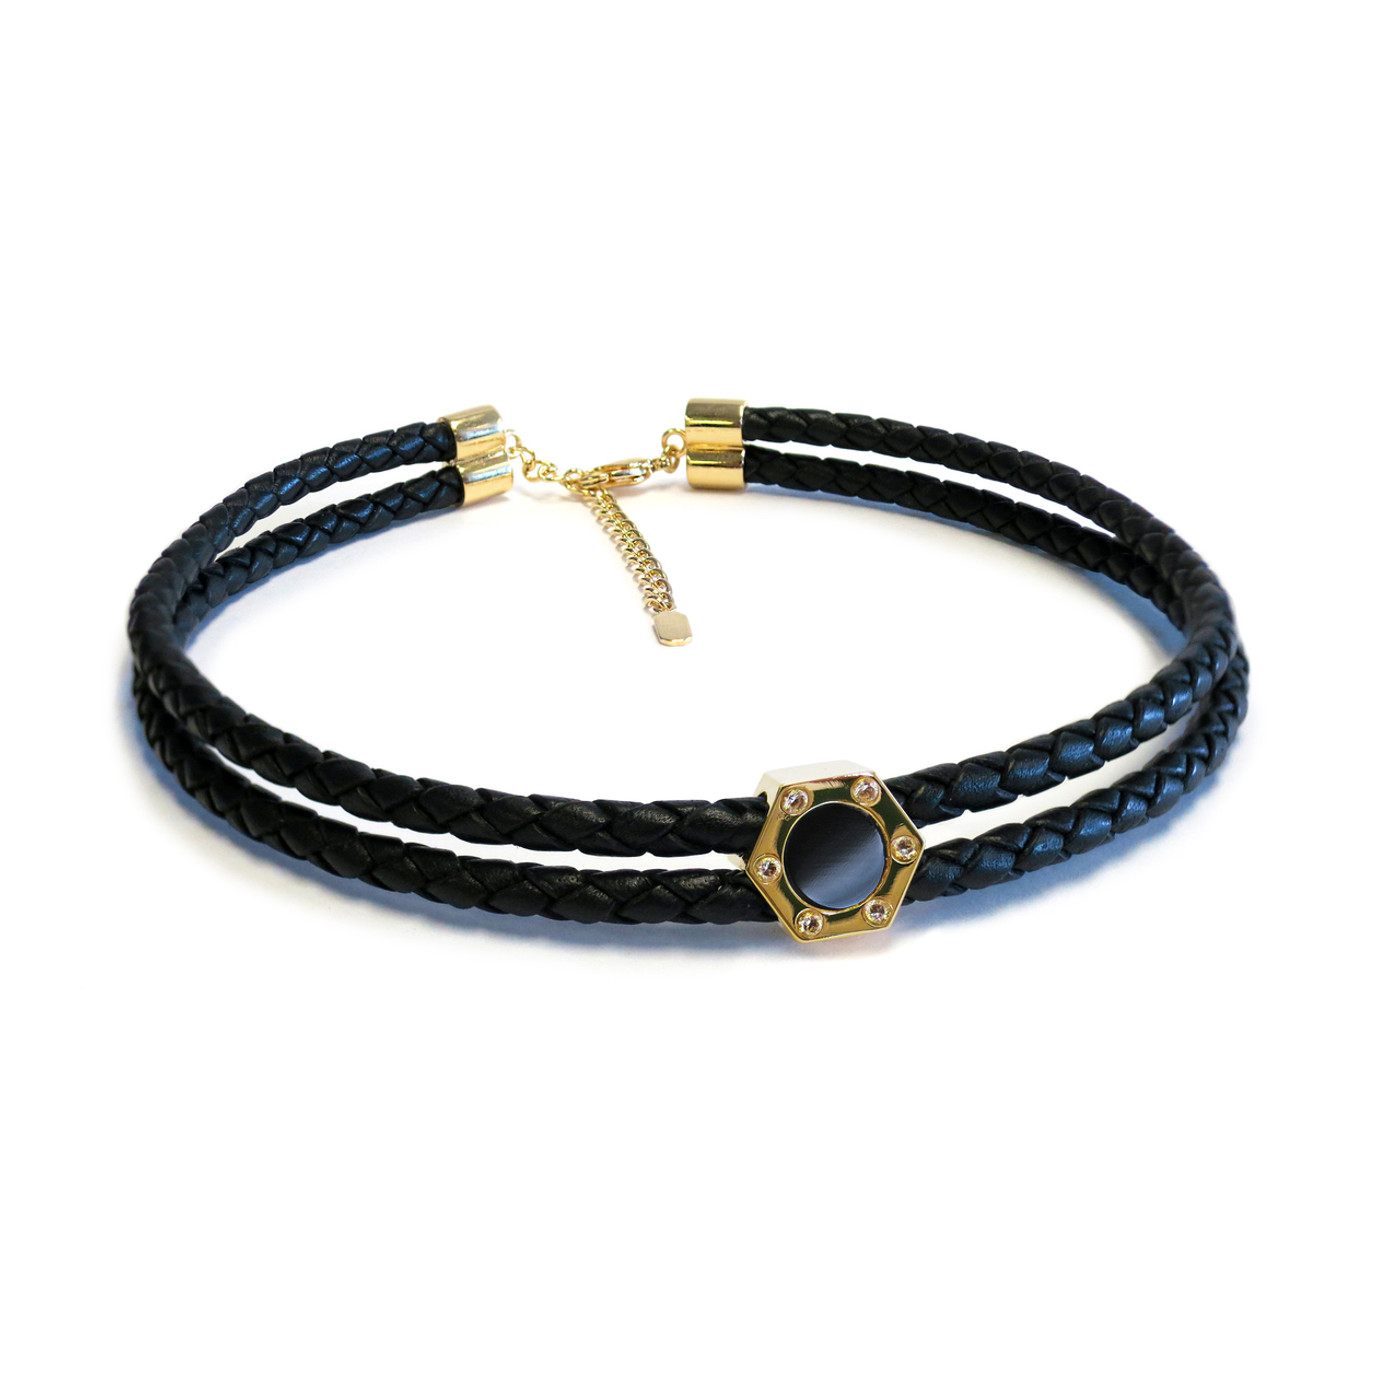 Monte Carlo Onyx Gold Leather Choker